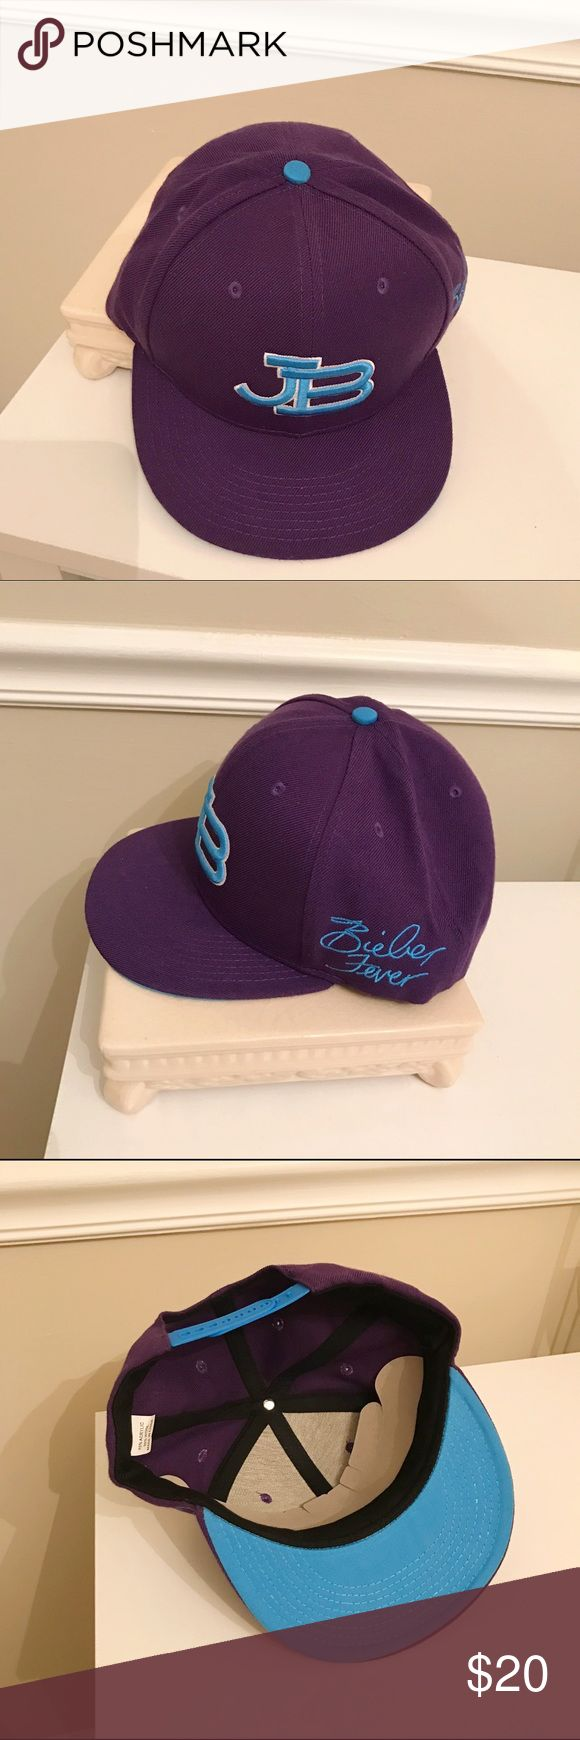 NWOT Justin Bieber SnapBack Cap JB Justin Bieber NWOT Bieber Fever Snapback Adjustable Flat Brim Purple and Blue Hat. Came from a batch of leftover concert merch wrap in plastic and brand-new. Justin Bieber Accessories Hats